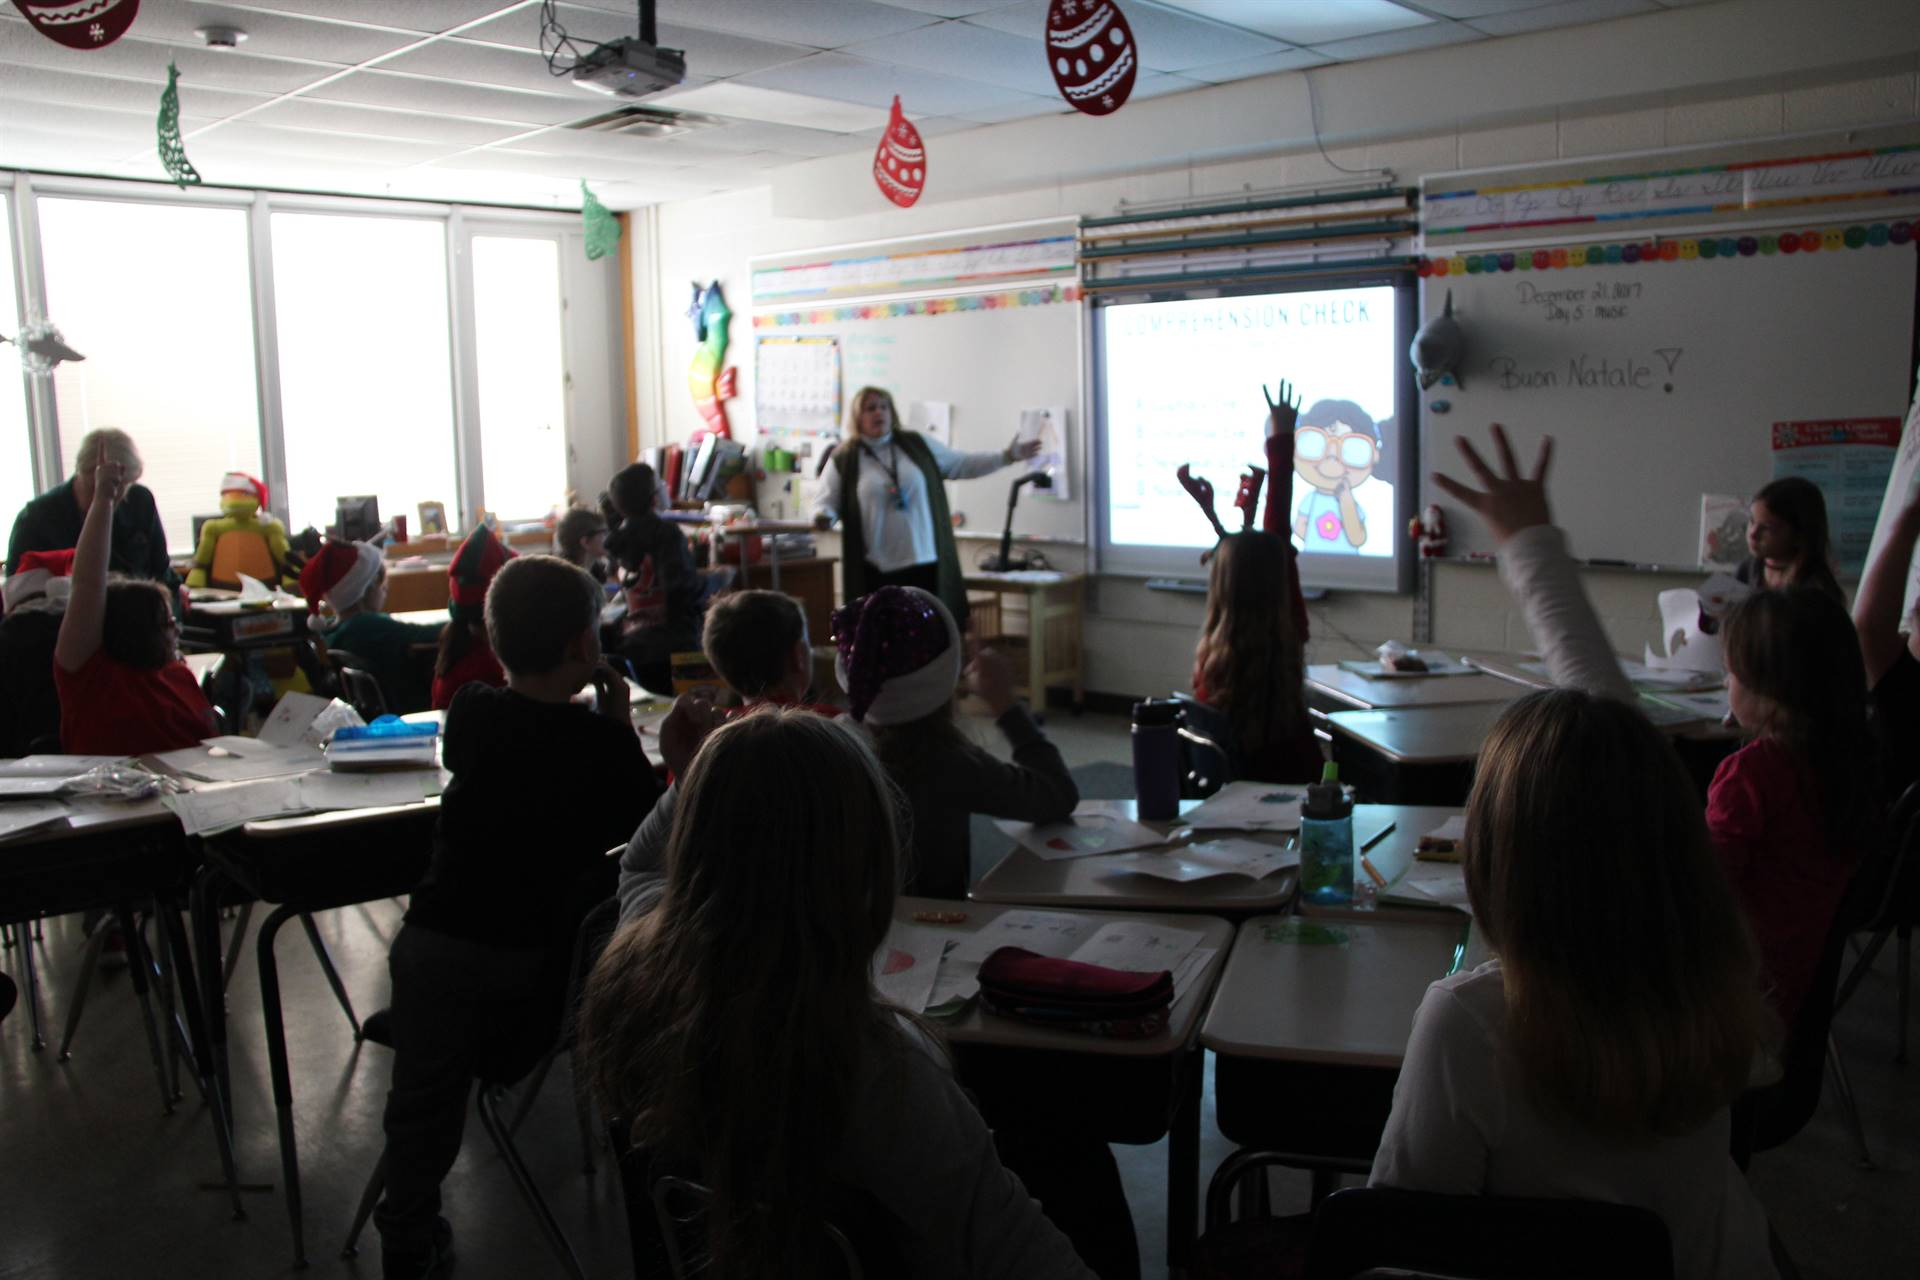 students raise hands to answer question